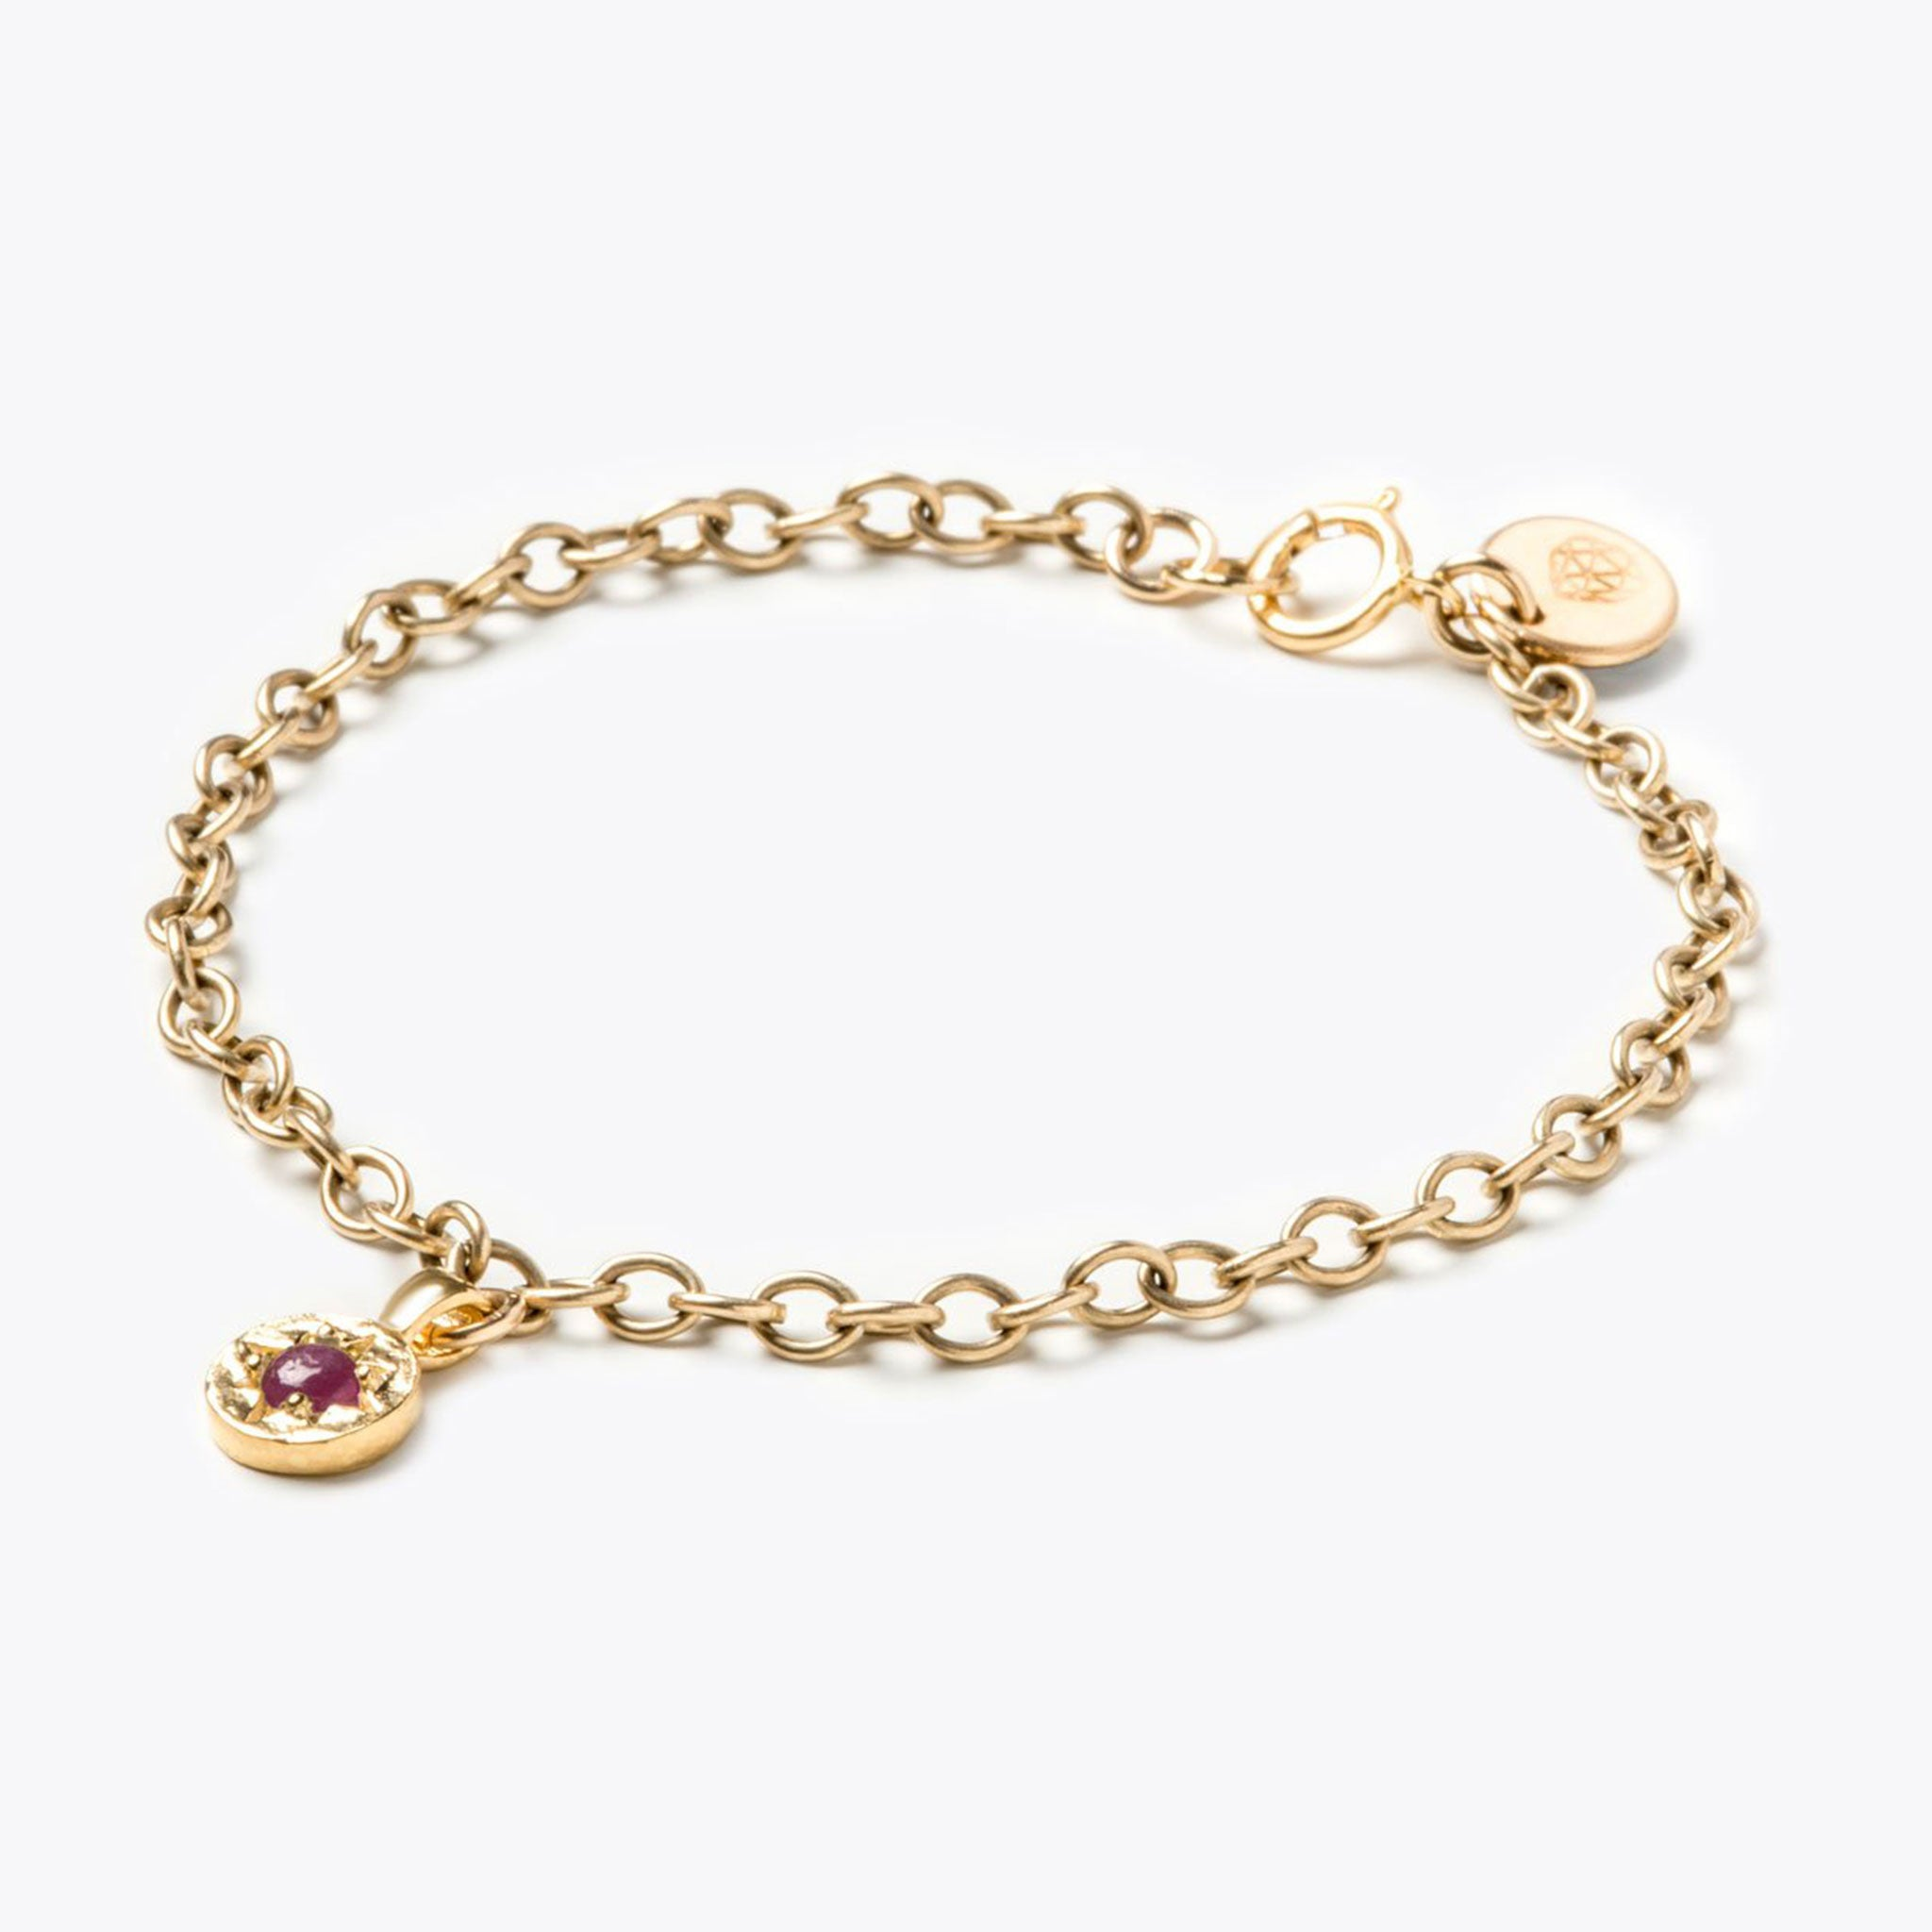 Wanderlust Life July birthstone 14k gold fill charm bracelet featuring semi precious ruby gemstone symbolising the month of July. July birthstone gold bracelet available in small 6.5